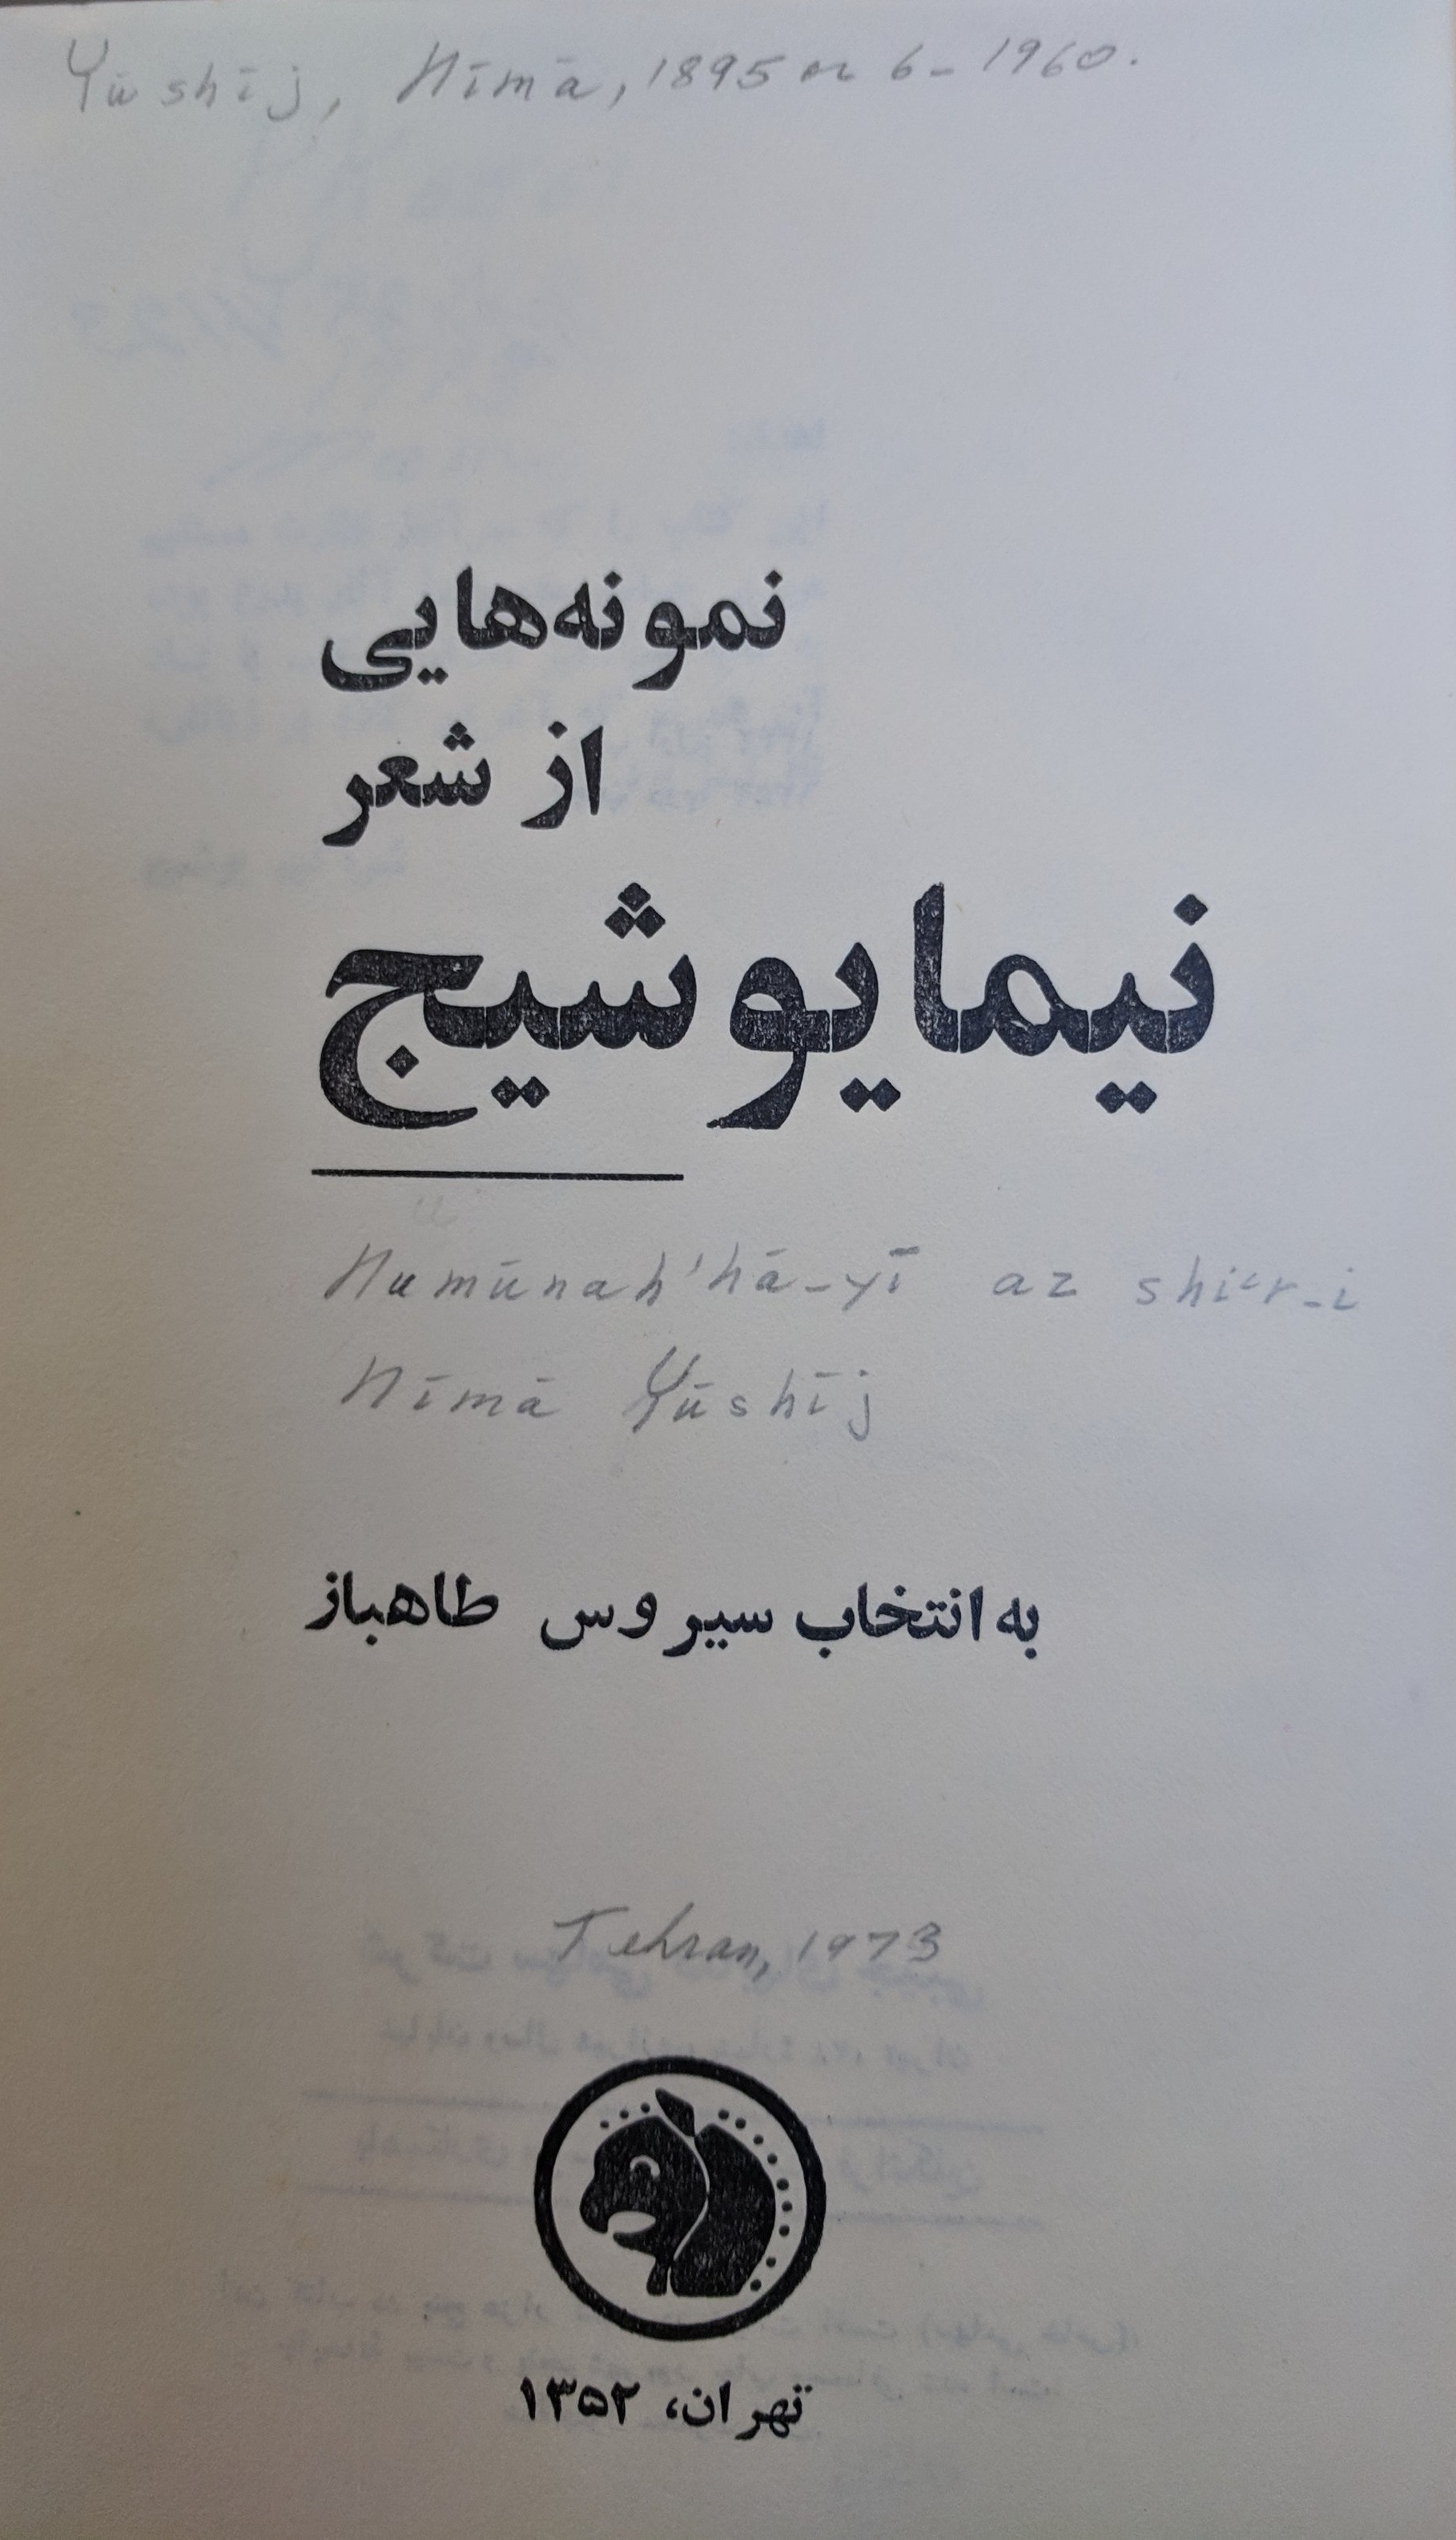 Published in cooperation with the Franklin Book Program